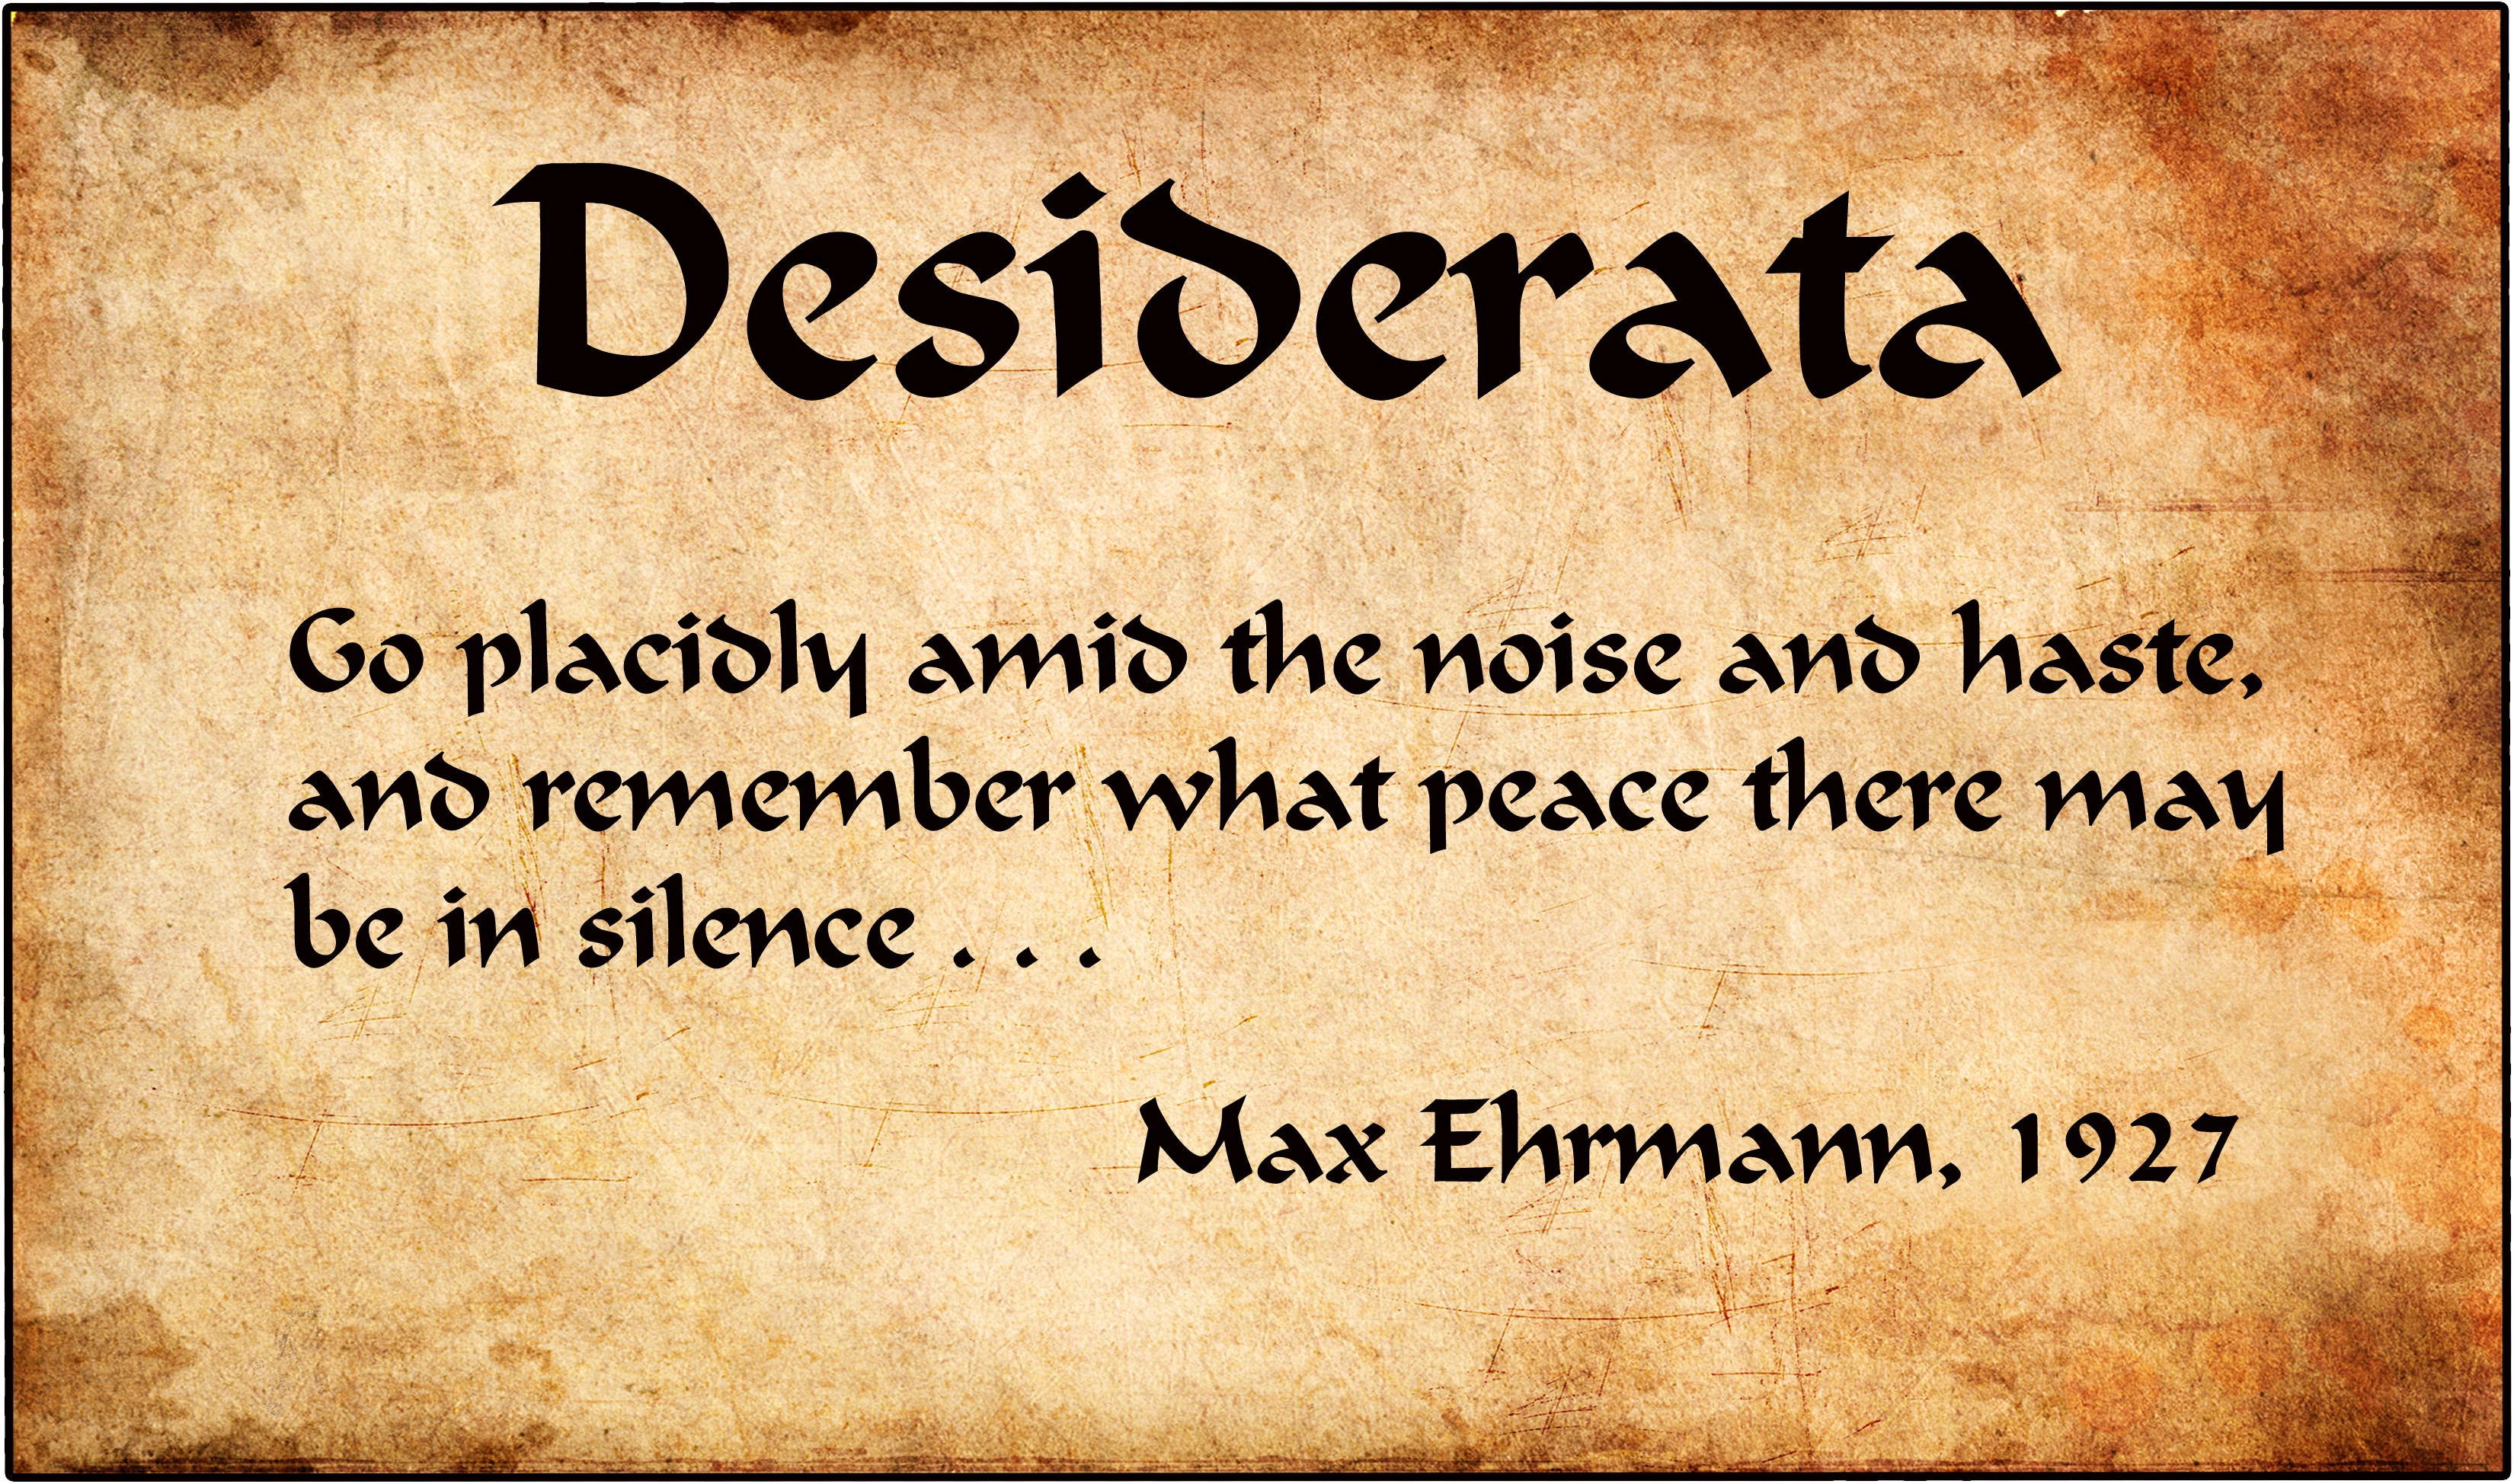 The Meaning Behind The Desiderata Poem By Michael Shook Publishous Medium Find out what is the full meaning of poem on abbreviations.com! the meaning behind the desiderata poem